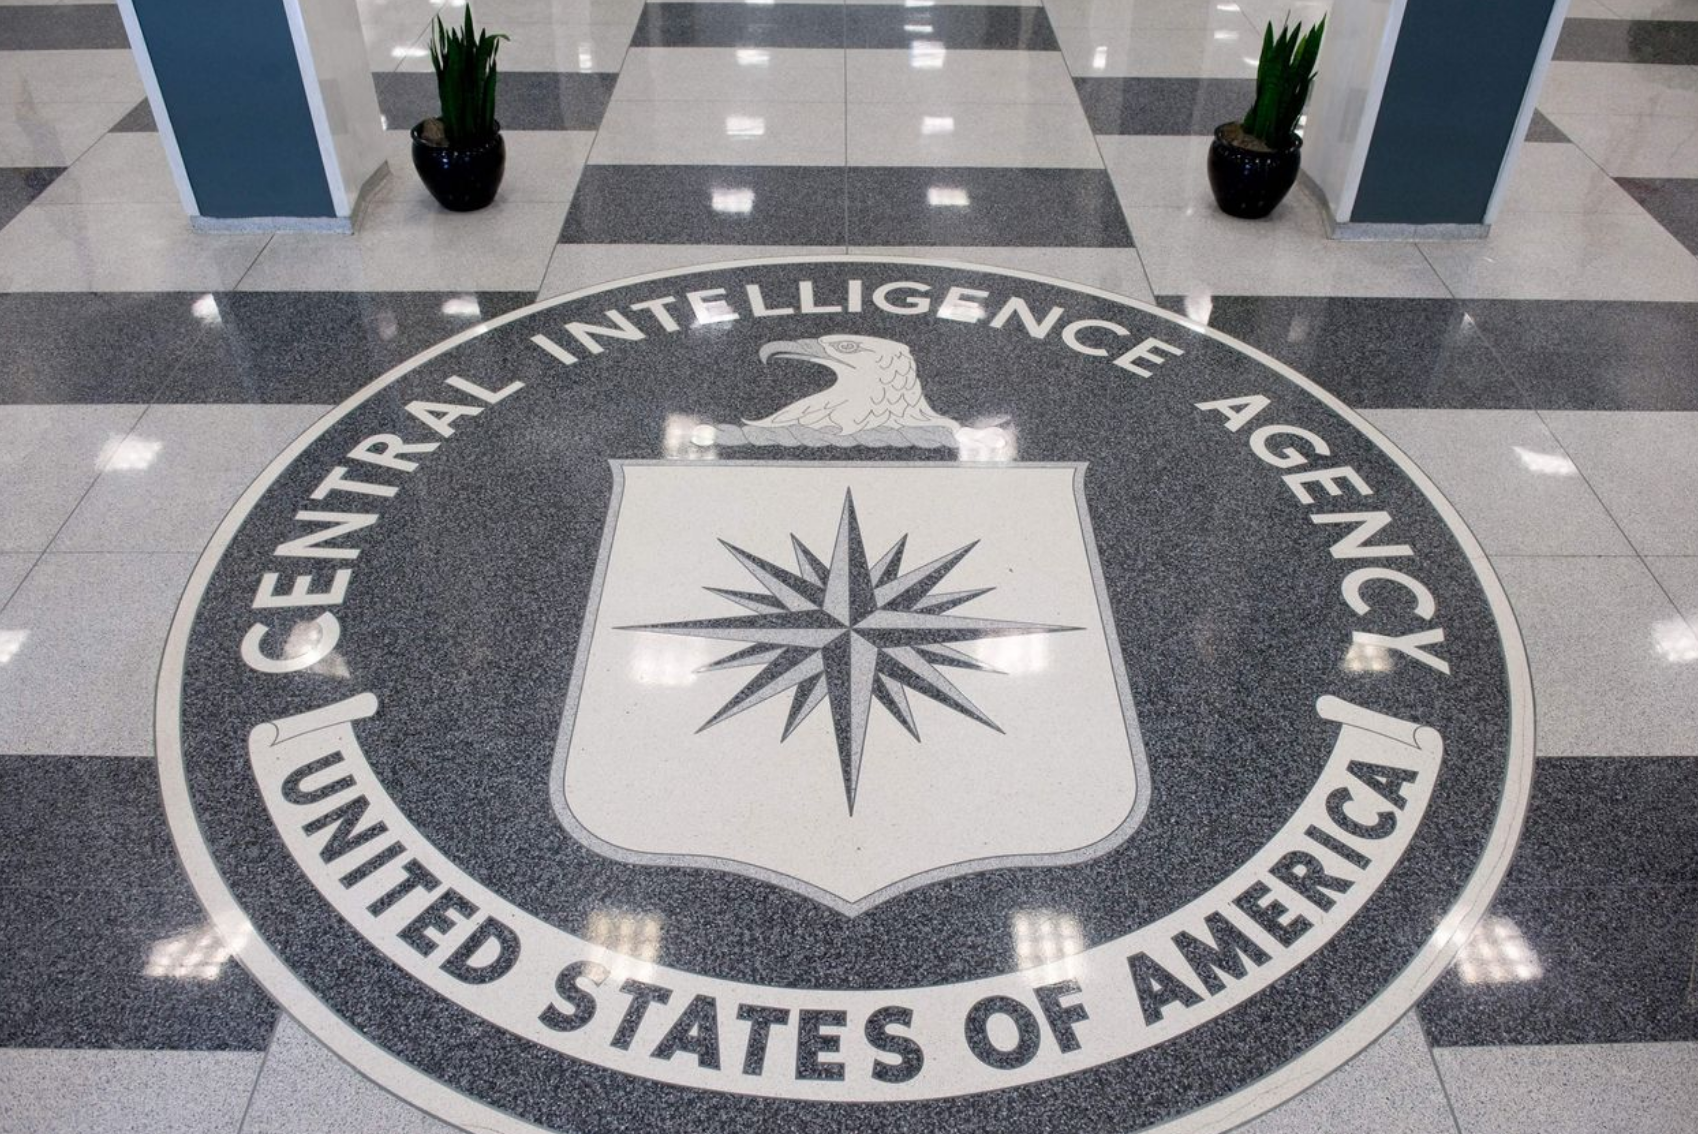 Ex-CIA Engineer Goes On Trial For Massive Leak